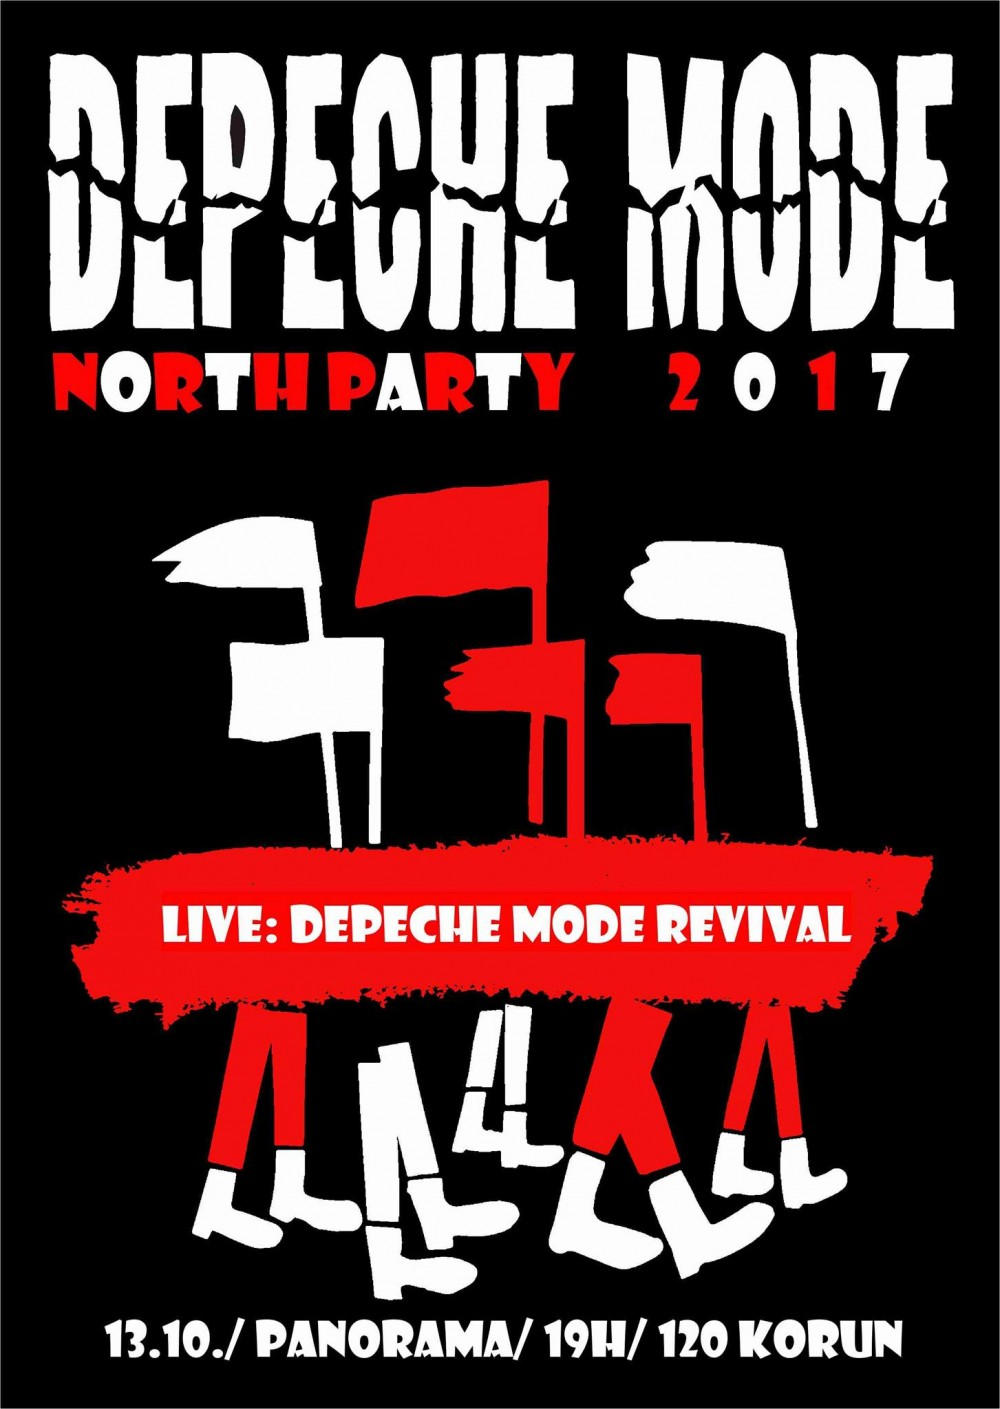 Plagát: Depeche mode North Party